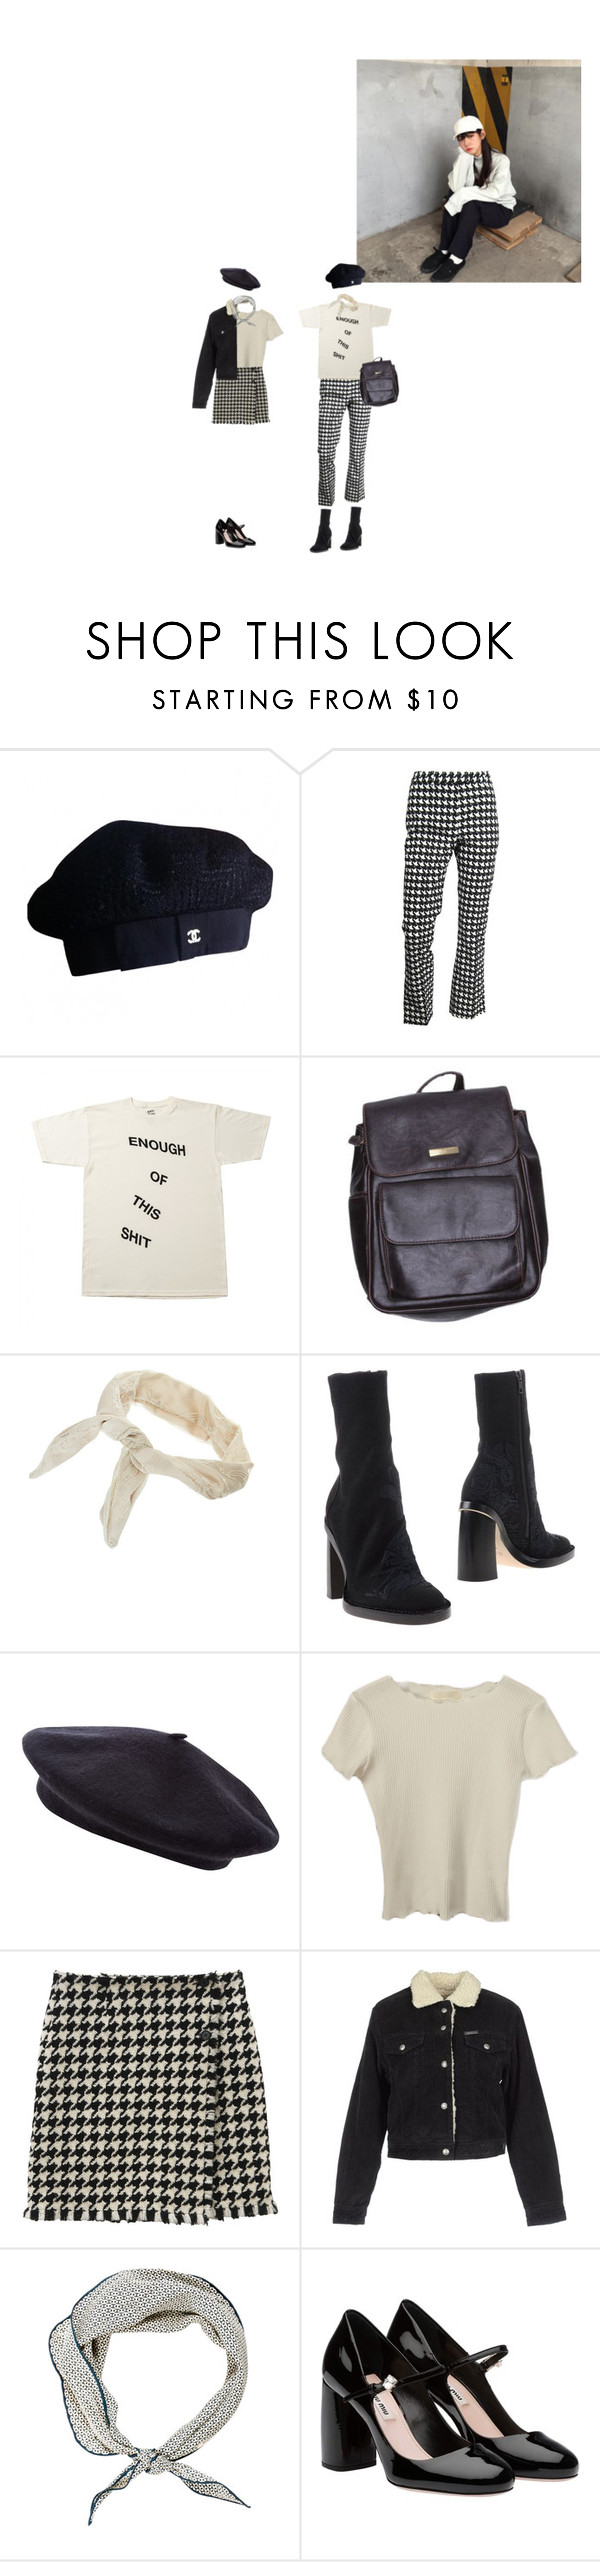 """turn ur magic on"" by rojinnn ❤ liked on Polyvore featuring Chanel, John Galliano, American Apparel, Dorothy Perkins, Ann Demeulemeester, Pepe Jeans London, Hermès and Miu Miu"